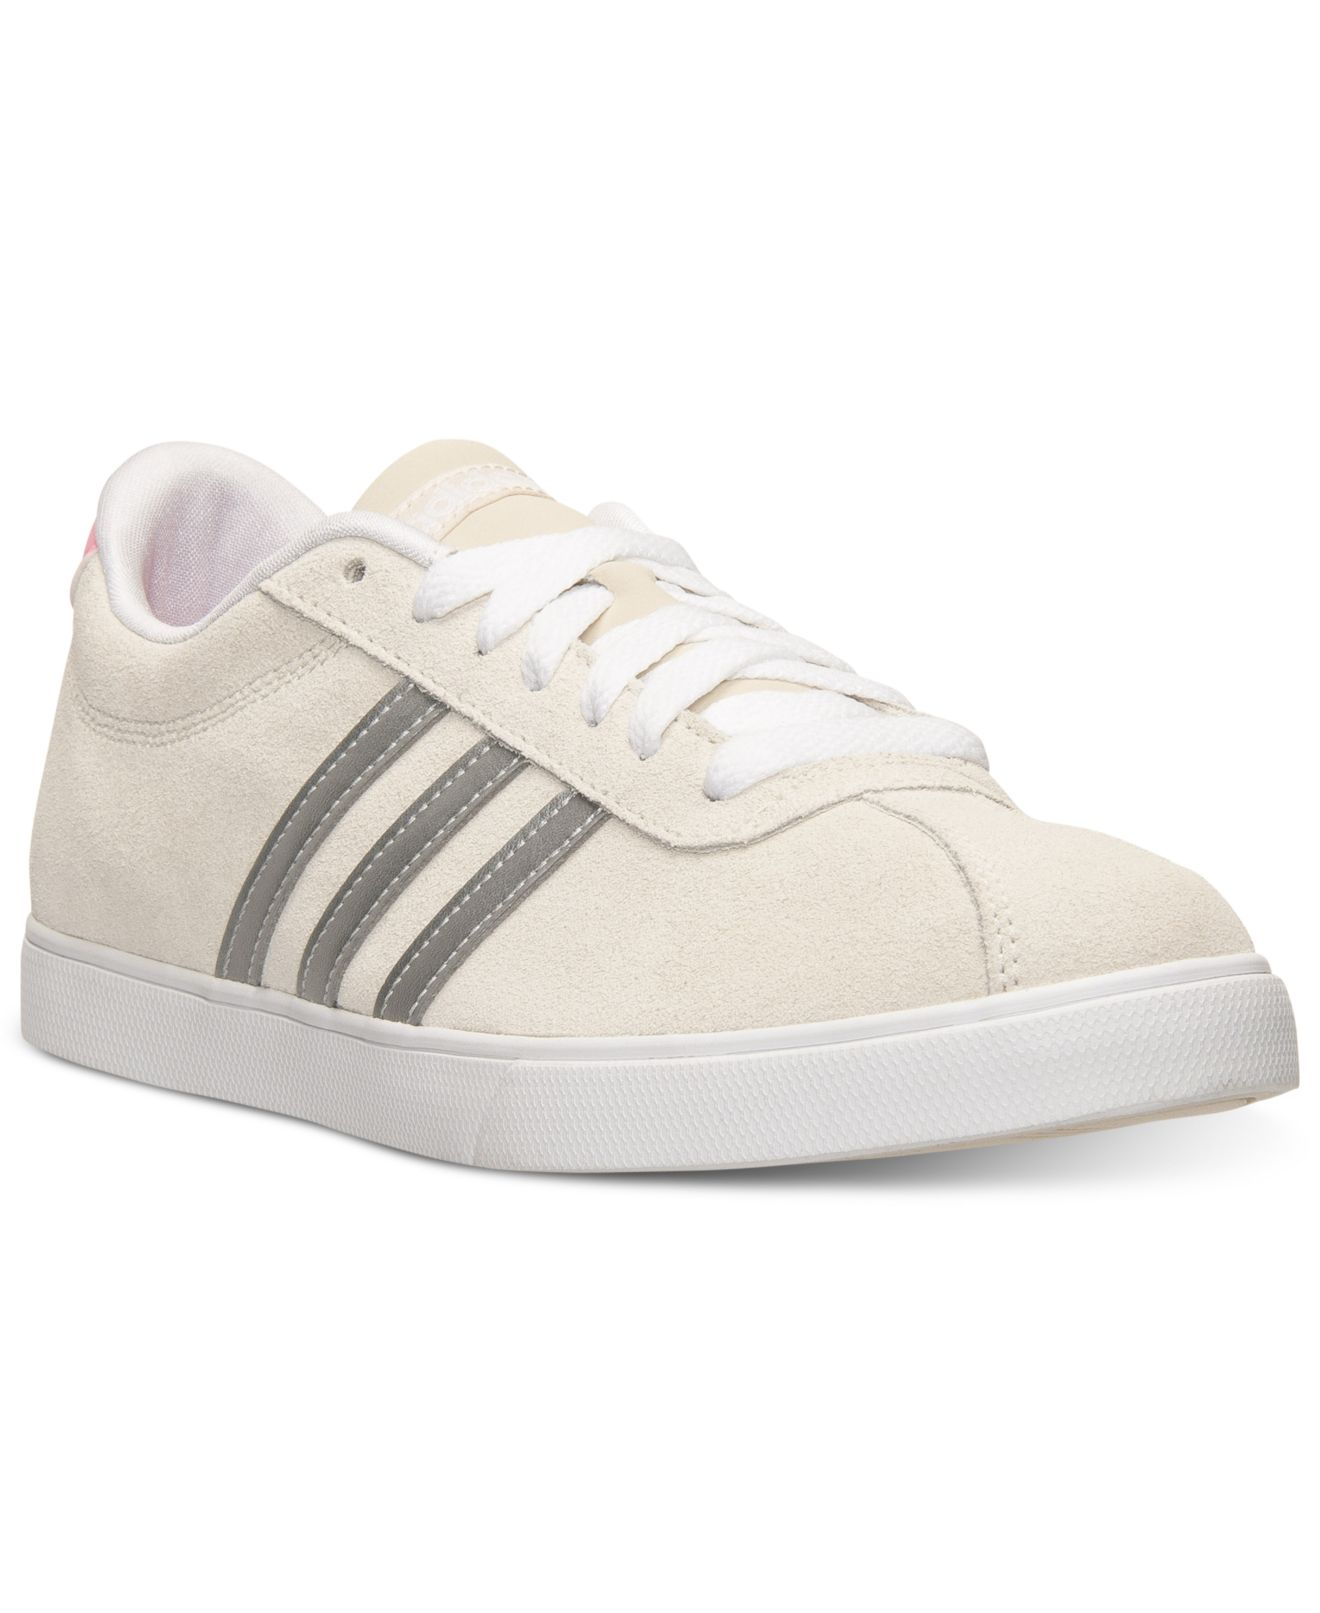 Adidas Casuals Trainers Adidas Women's Courtset Casual